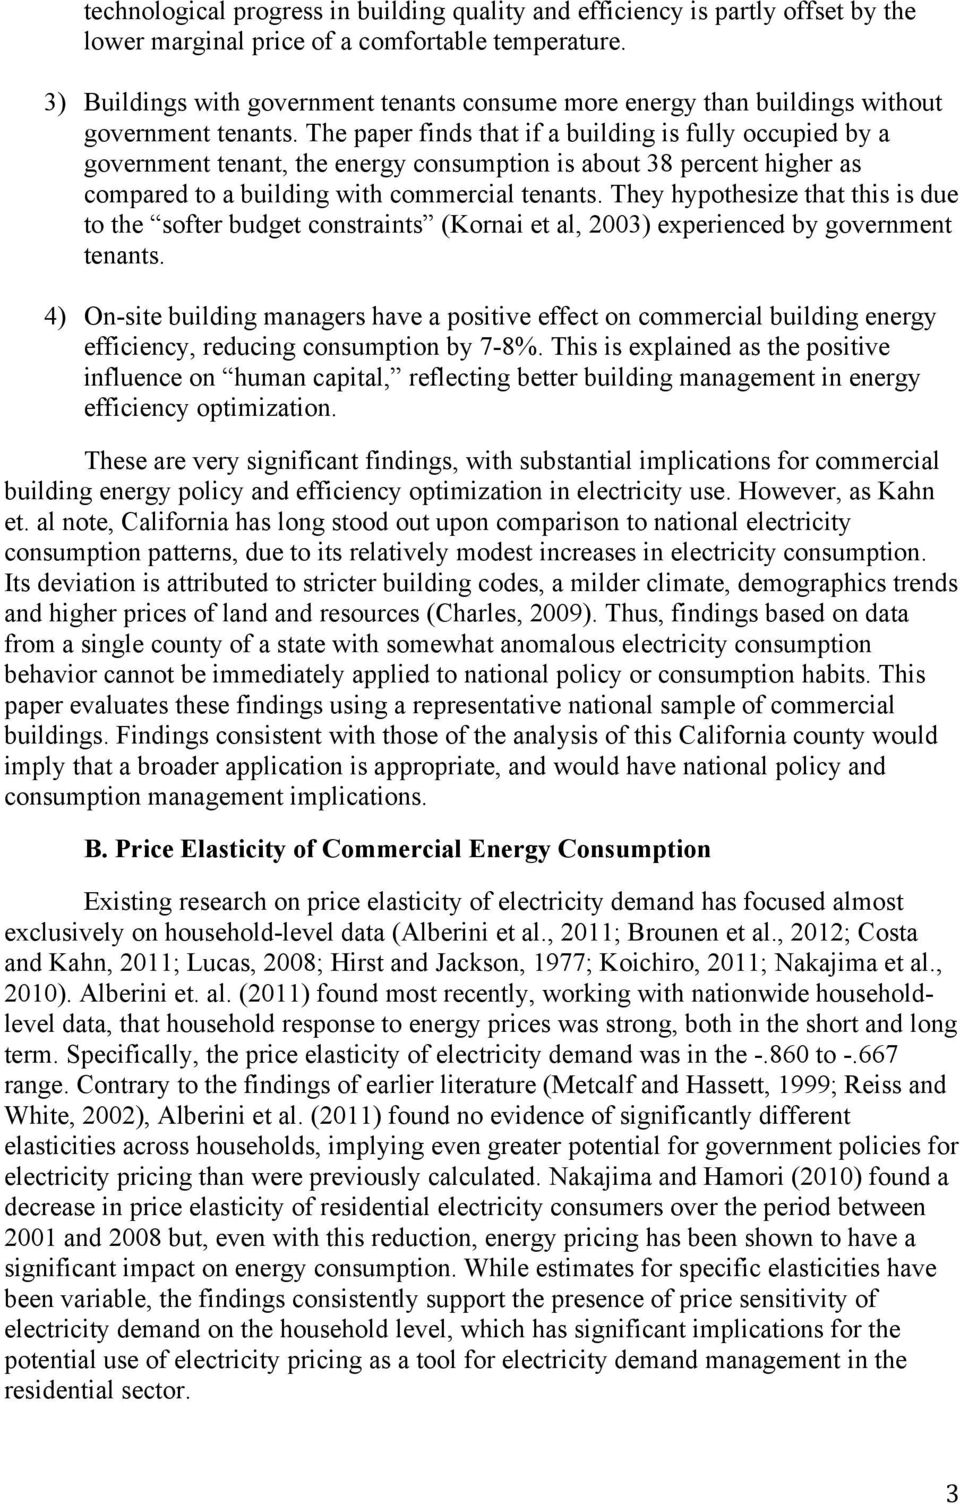 The paper finds that if a building is fully occupied by a government tenant, the energy consumption is about 38 percent higher as compared to a building with commercial tenants.